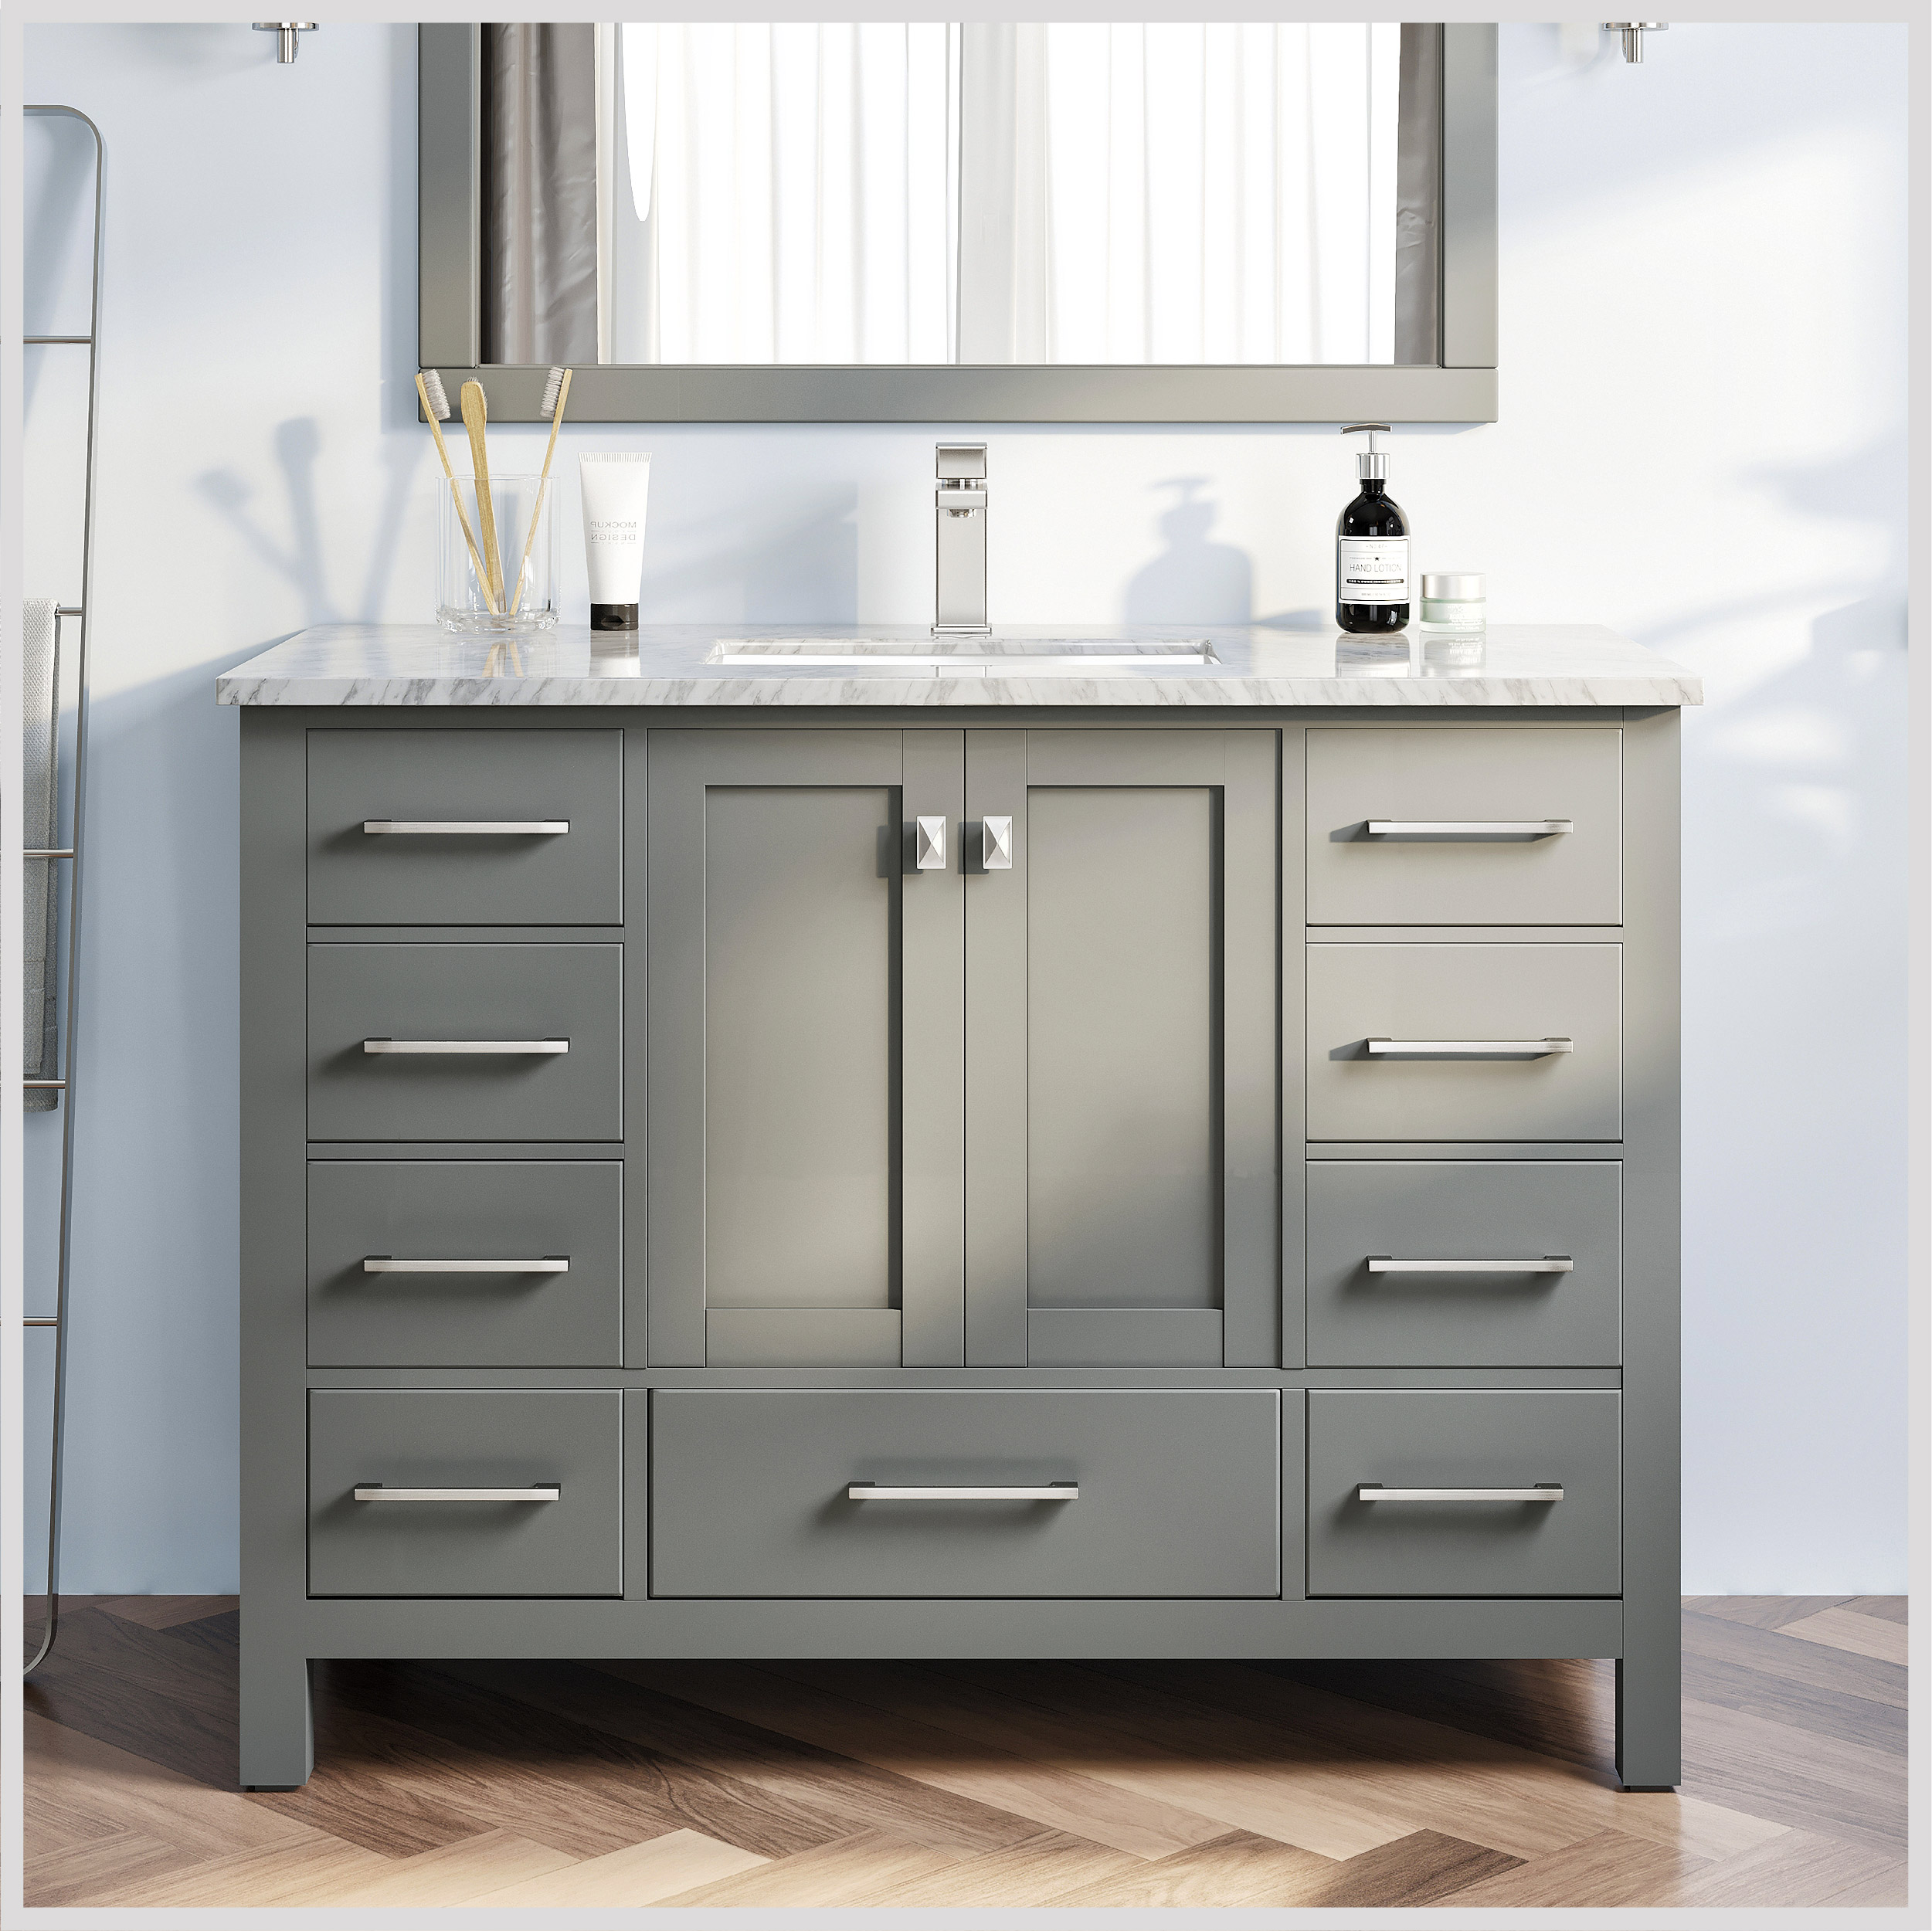 Eviva London 48 Transitional Grey Bathroom Vanity With White